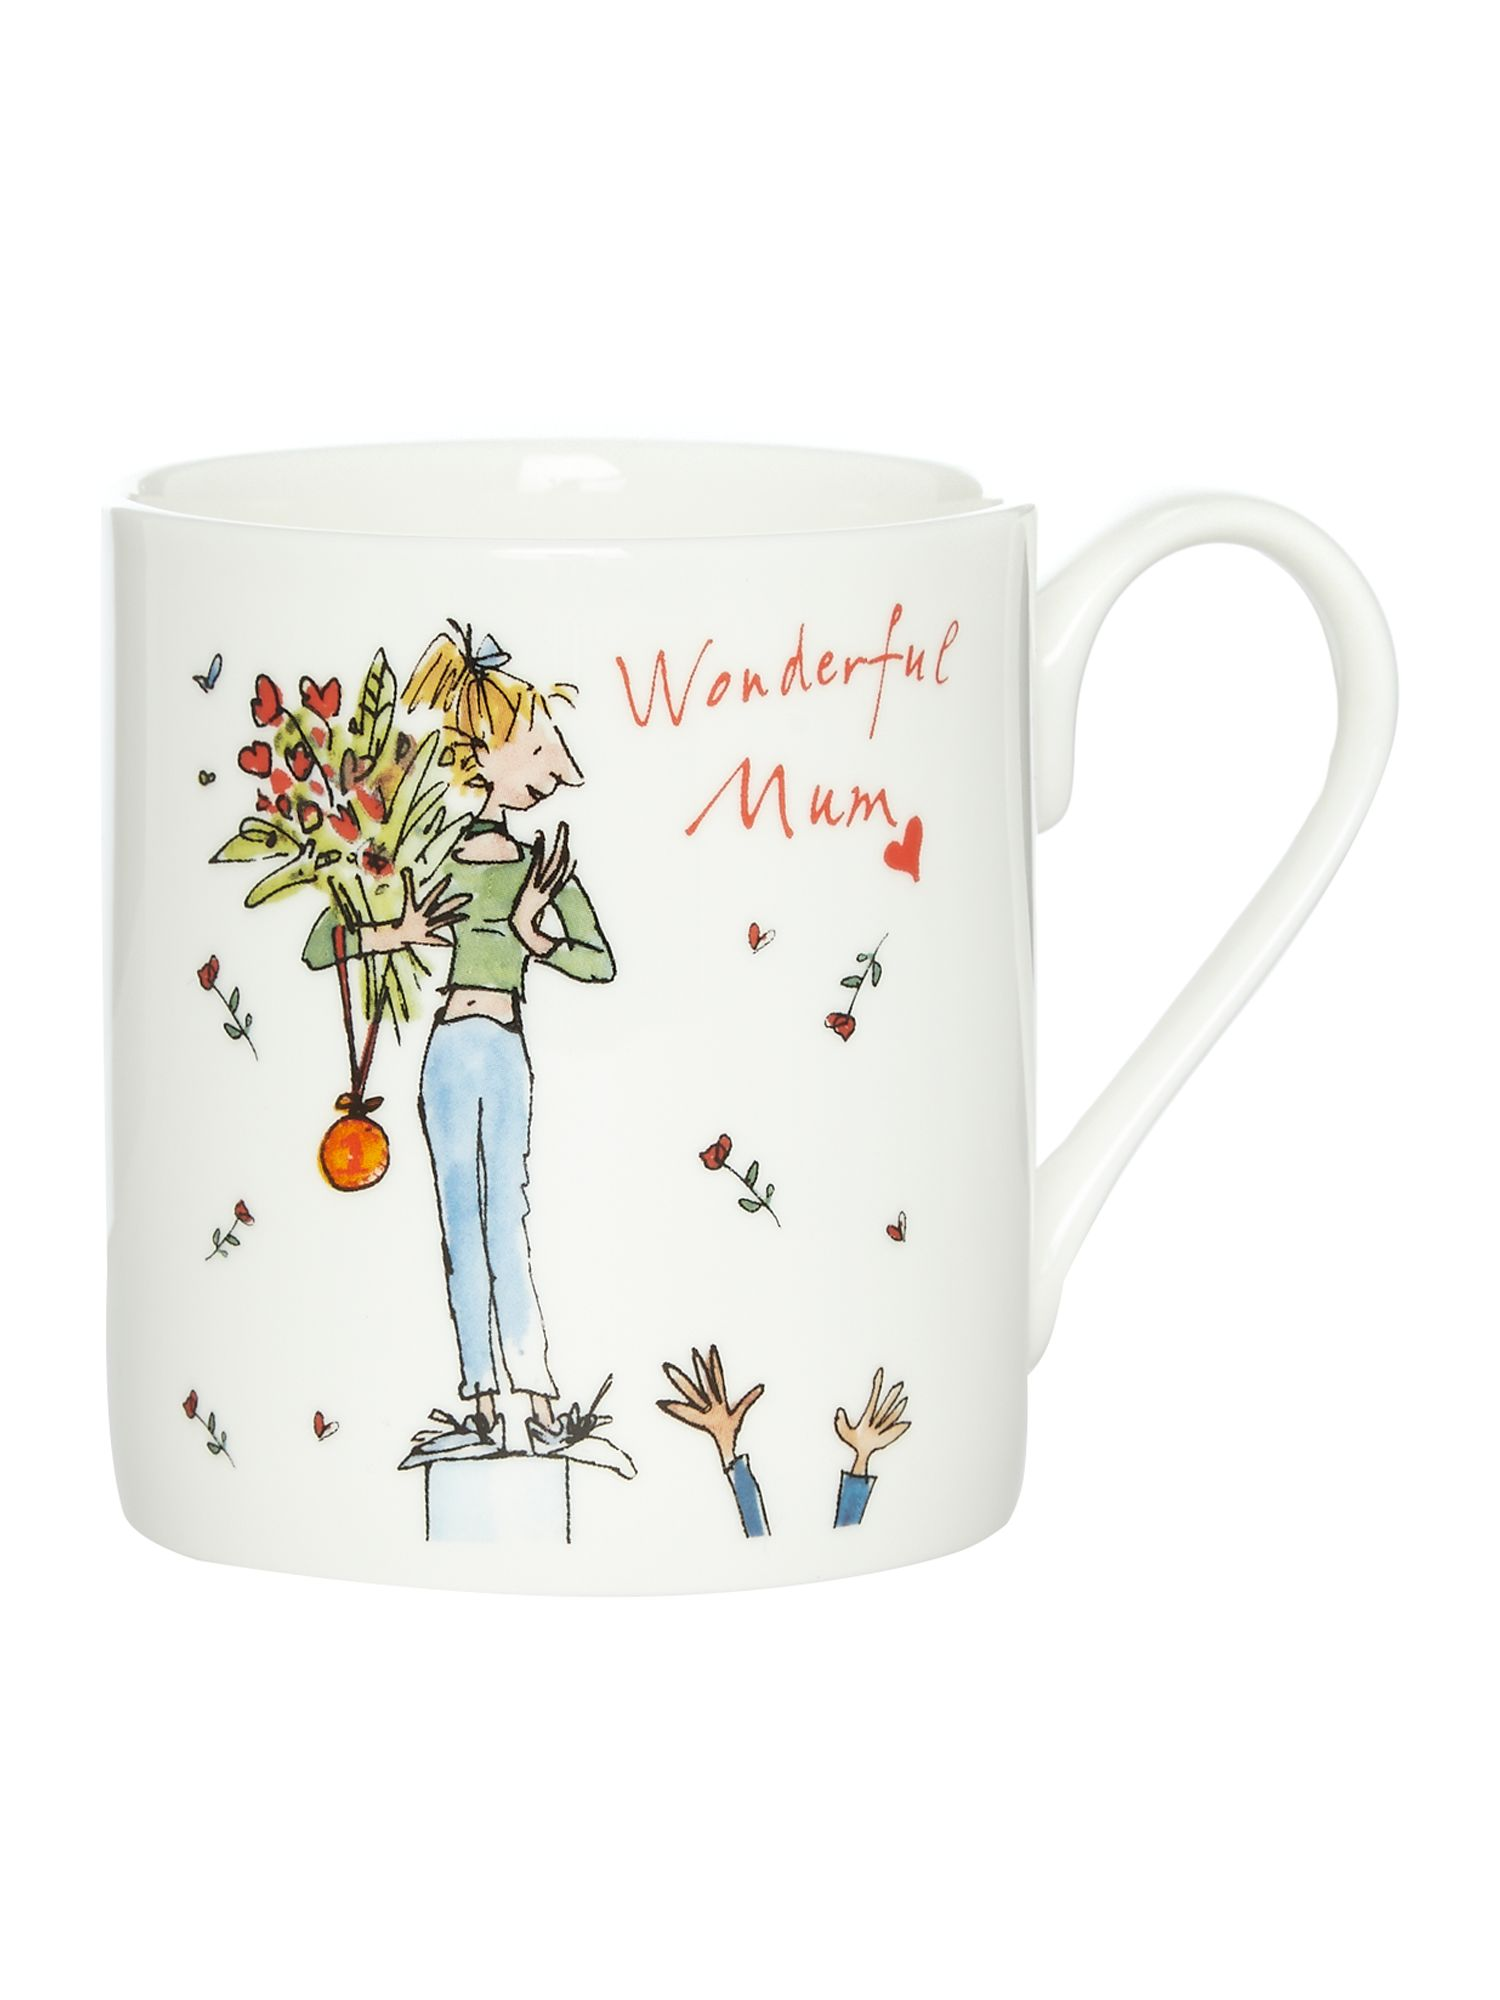 Image of Quentin Blake Wonderful Mum Mug